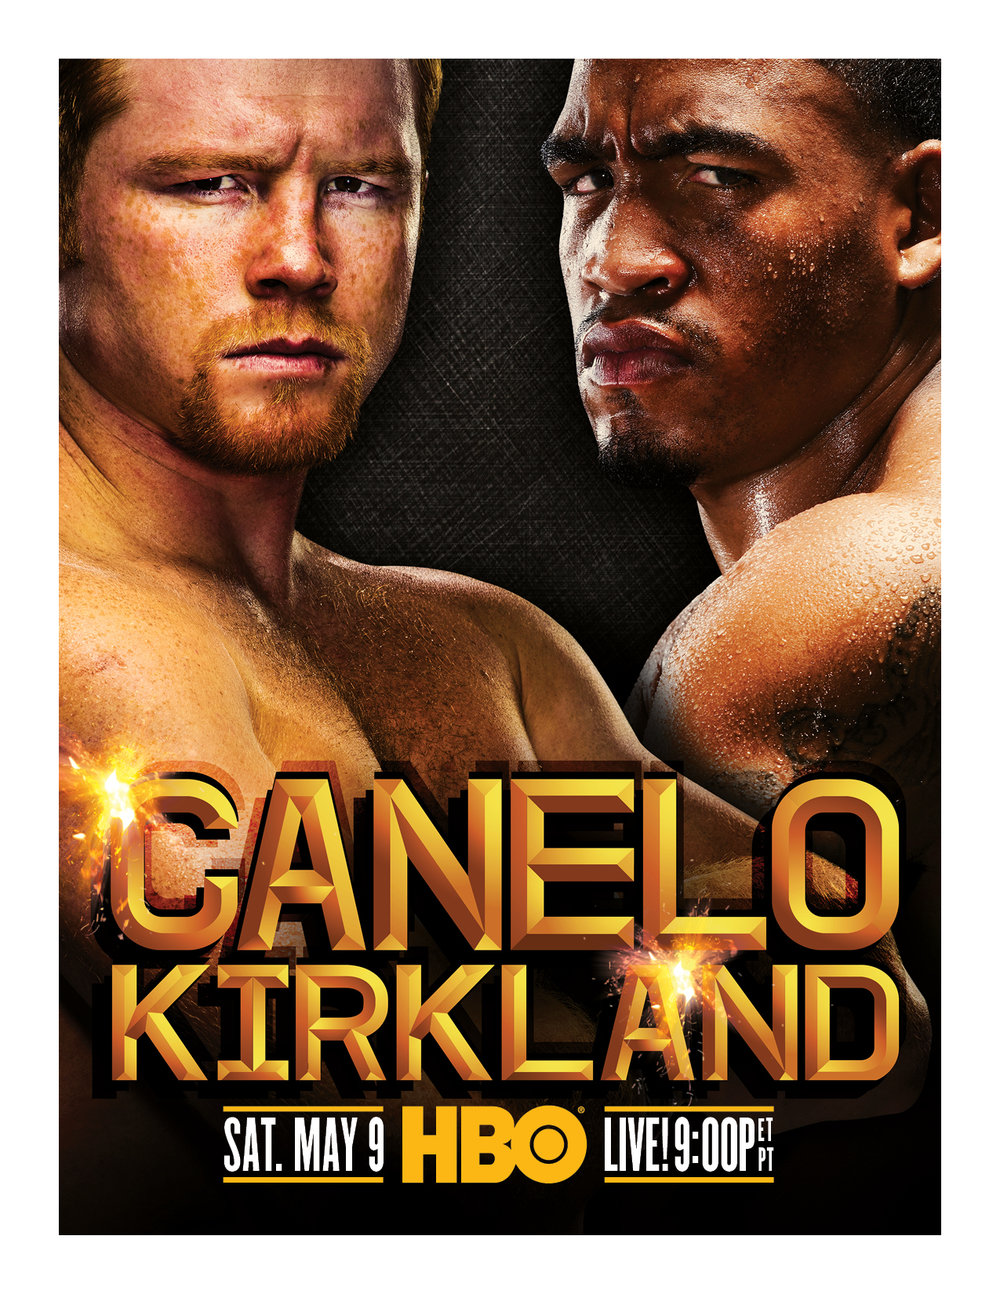 HBO Boxing P360 Website34.jpg